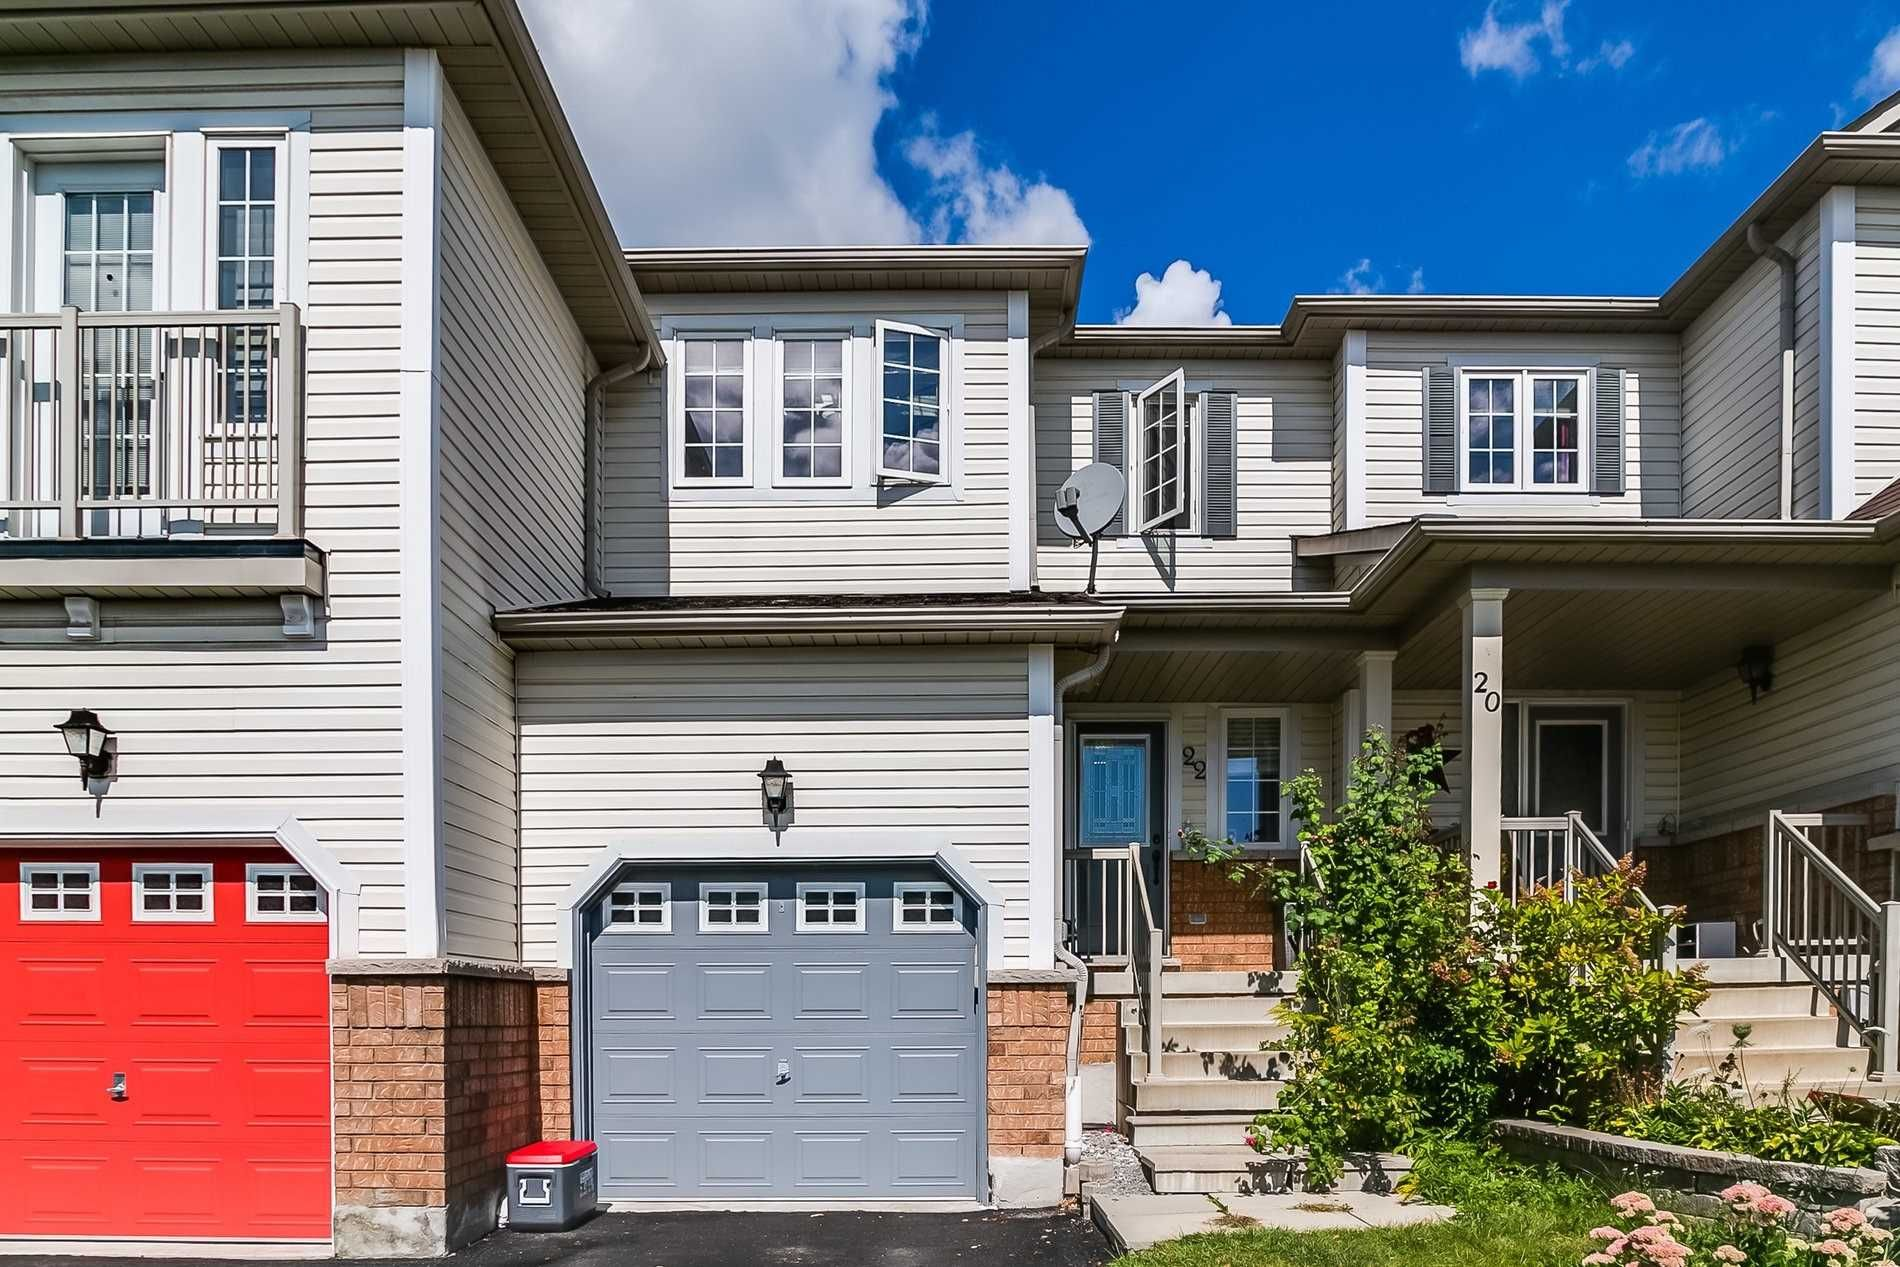 Main Photo: 22 Barkdale Way in Whitby: Pringle Creek House (2-Storey) for sale : MLS®# E5369358